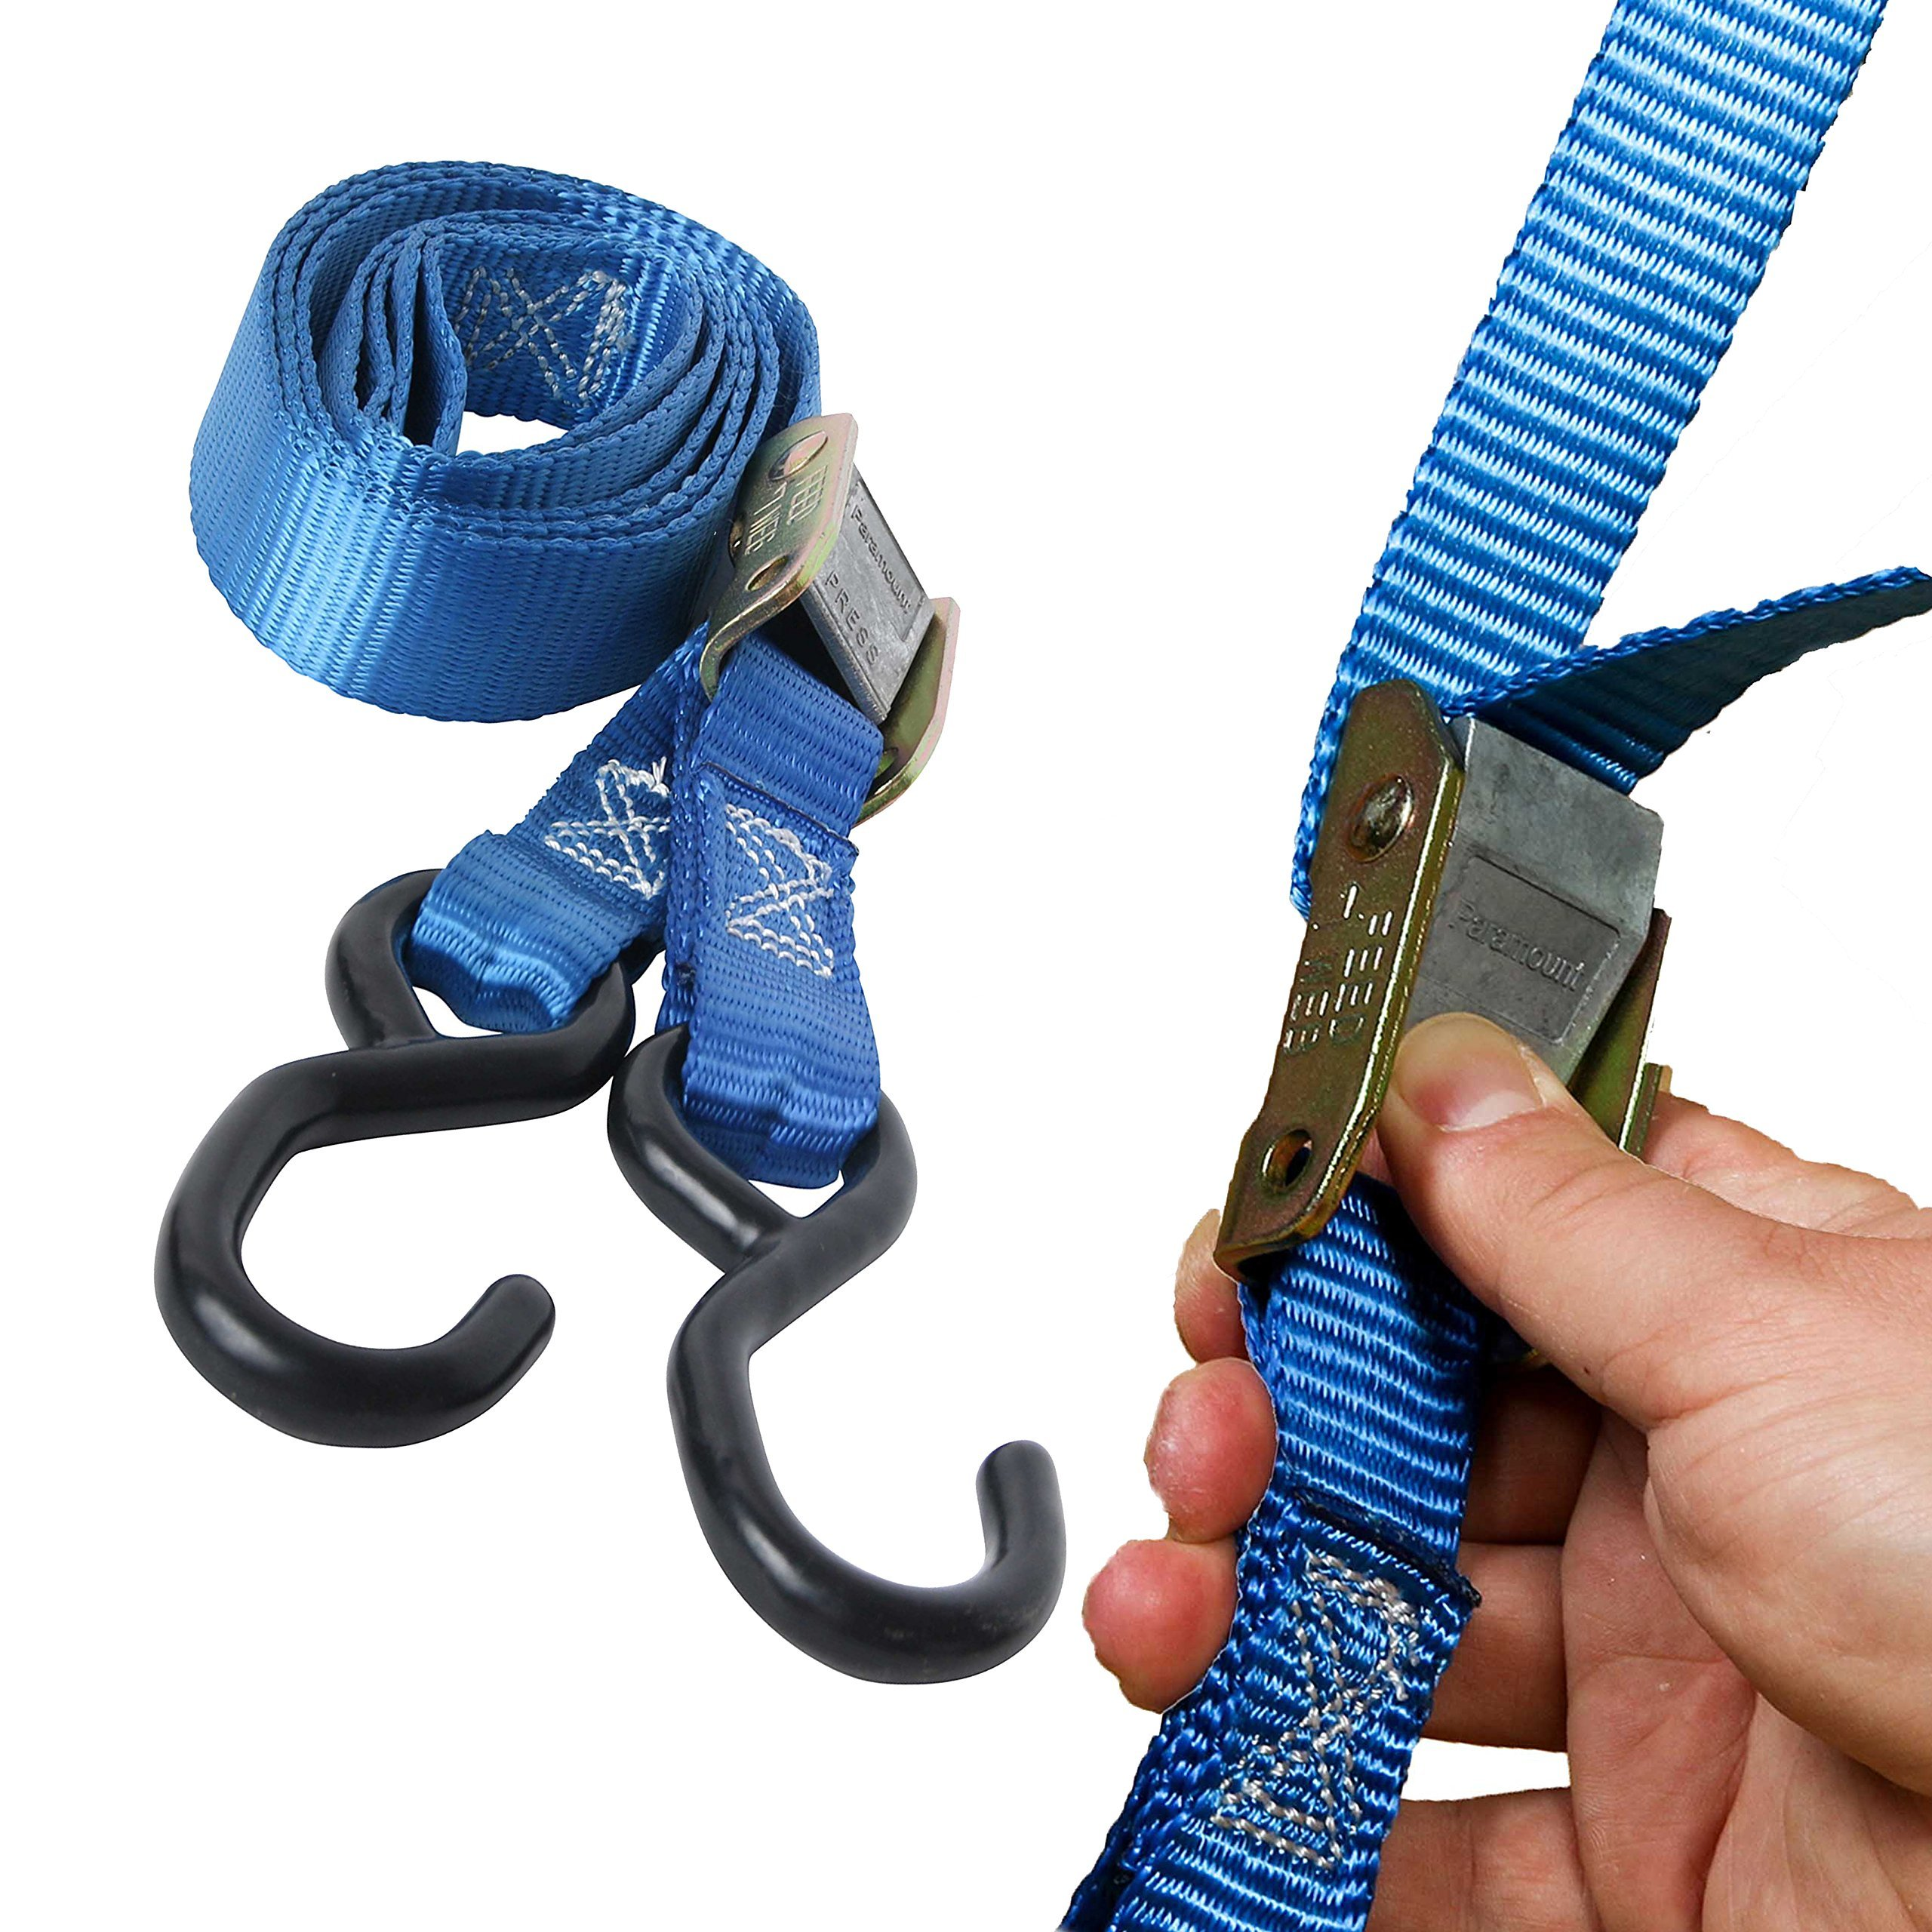 Blue PowerTye 2 x 8ft Cam Buckle Tie-Down Made in USA with Heavy-Duty S-Hooks pair